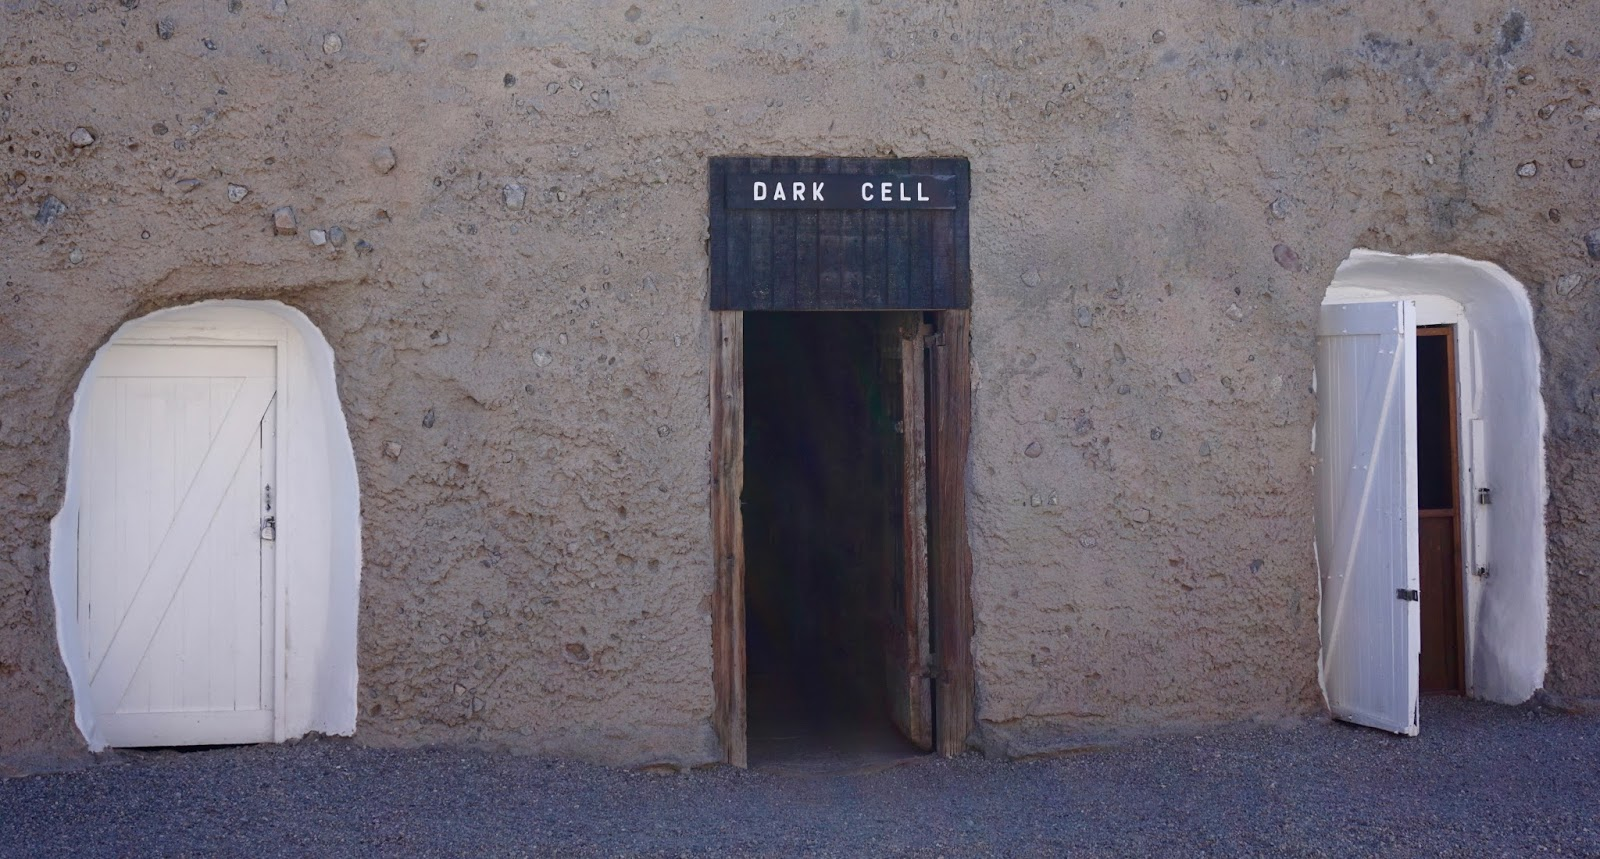 dark cell, yuma